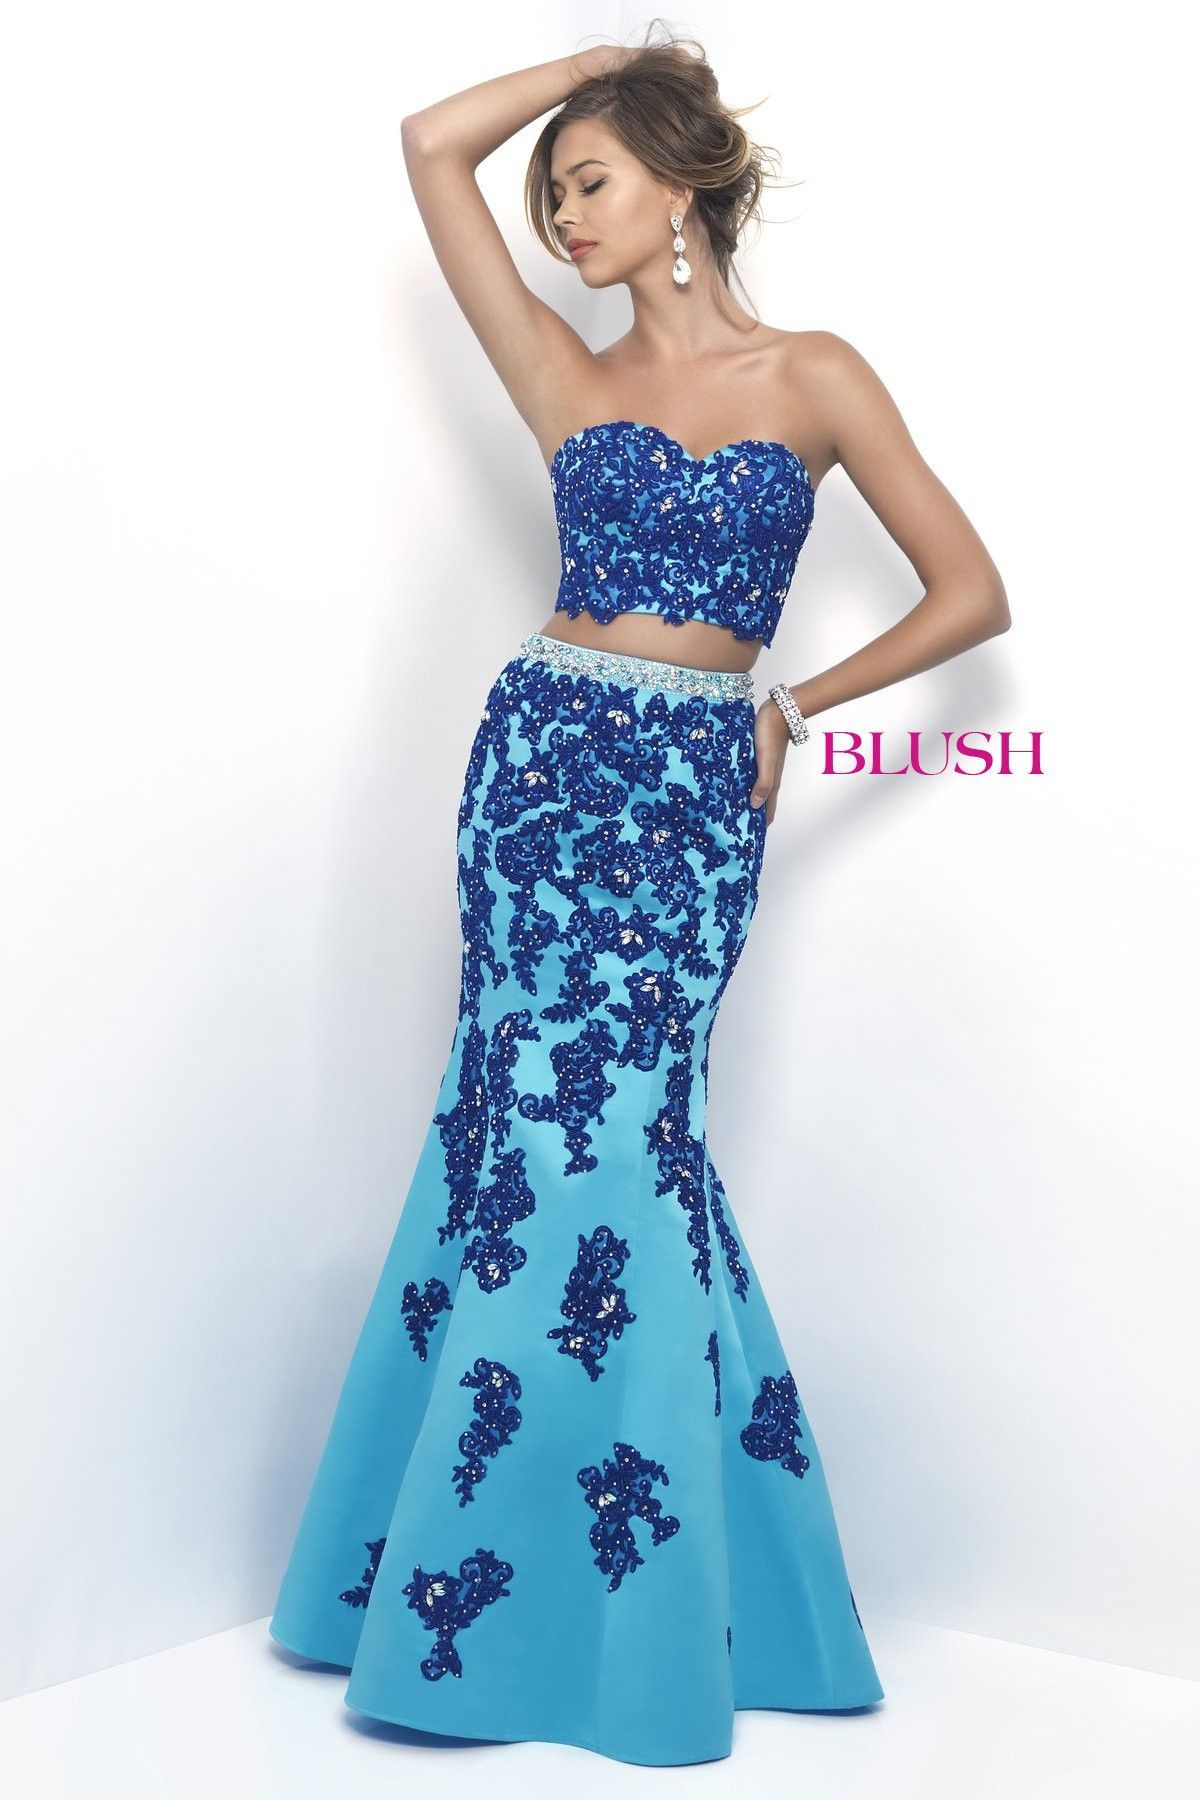 Blush Prom 7105 Pool Blue/Sapphire Lace Embroidered Two-Piece Prom ...